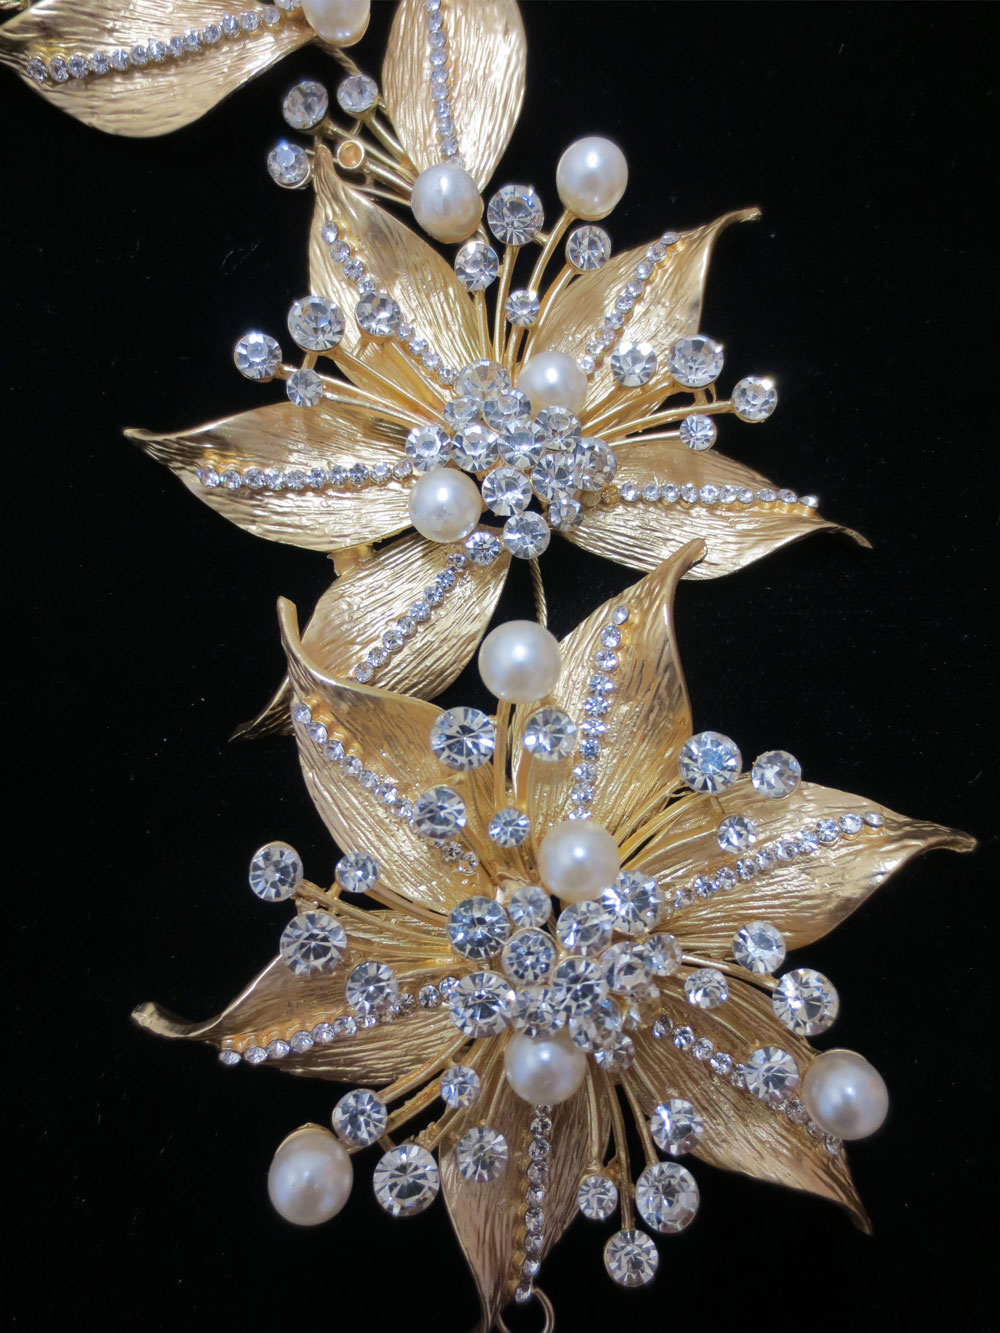 John-Zimmerman-Couture-Headpieces-and-Tiaras-Model-Dazzle-Gallery-Image-2